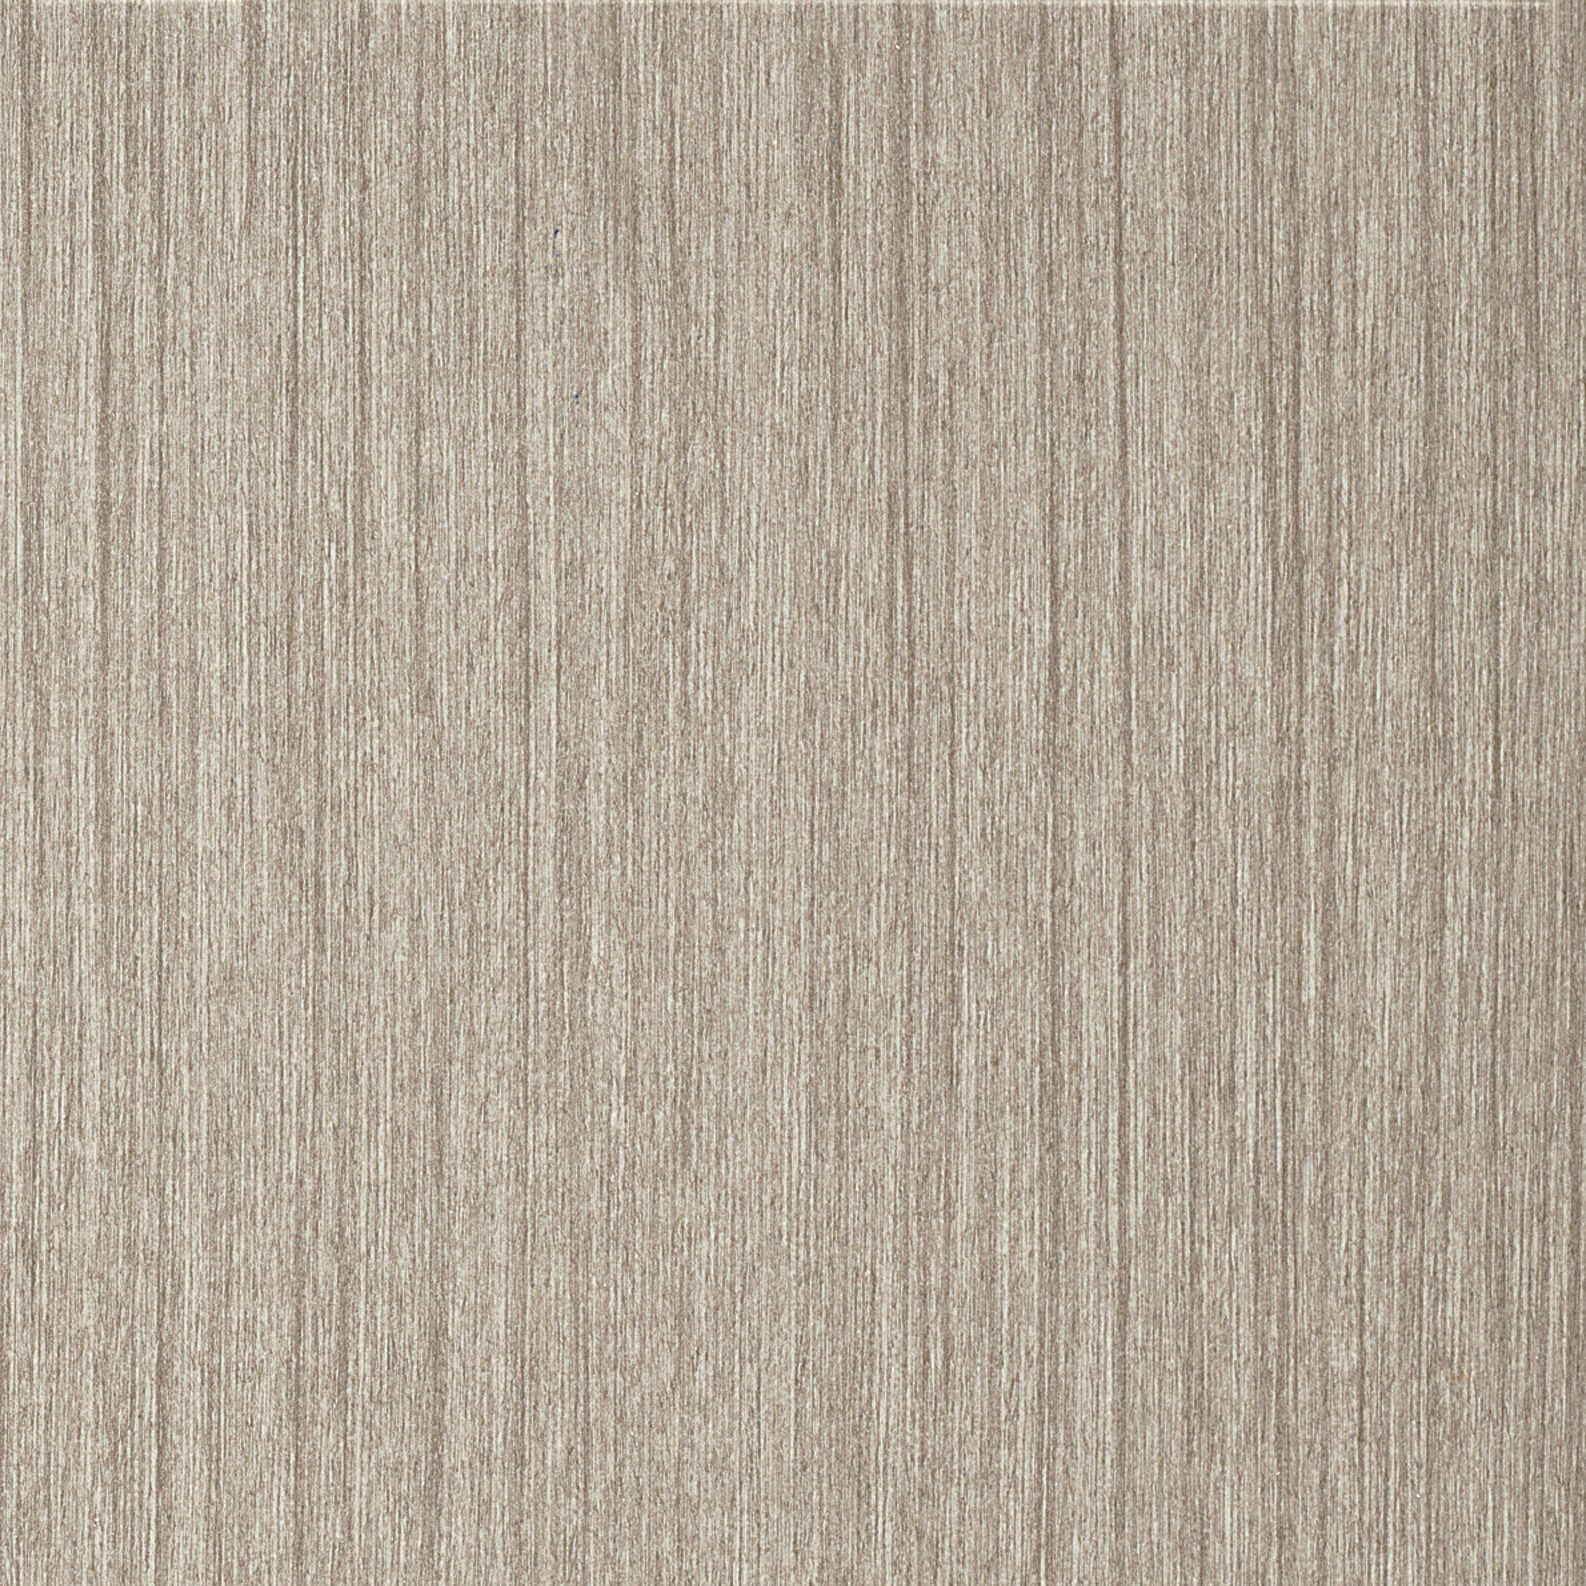 Armstrong Alterna Urban Gallery High-Rise Neutral